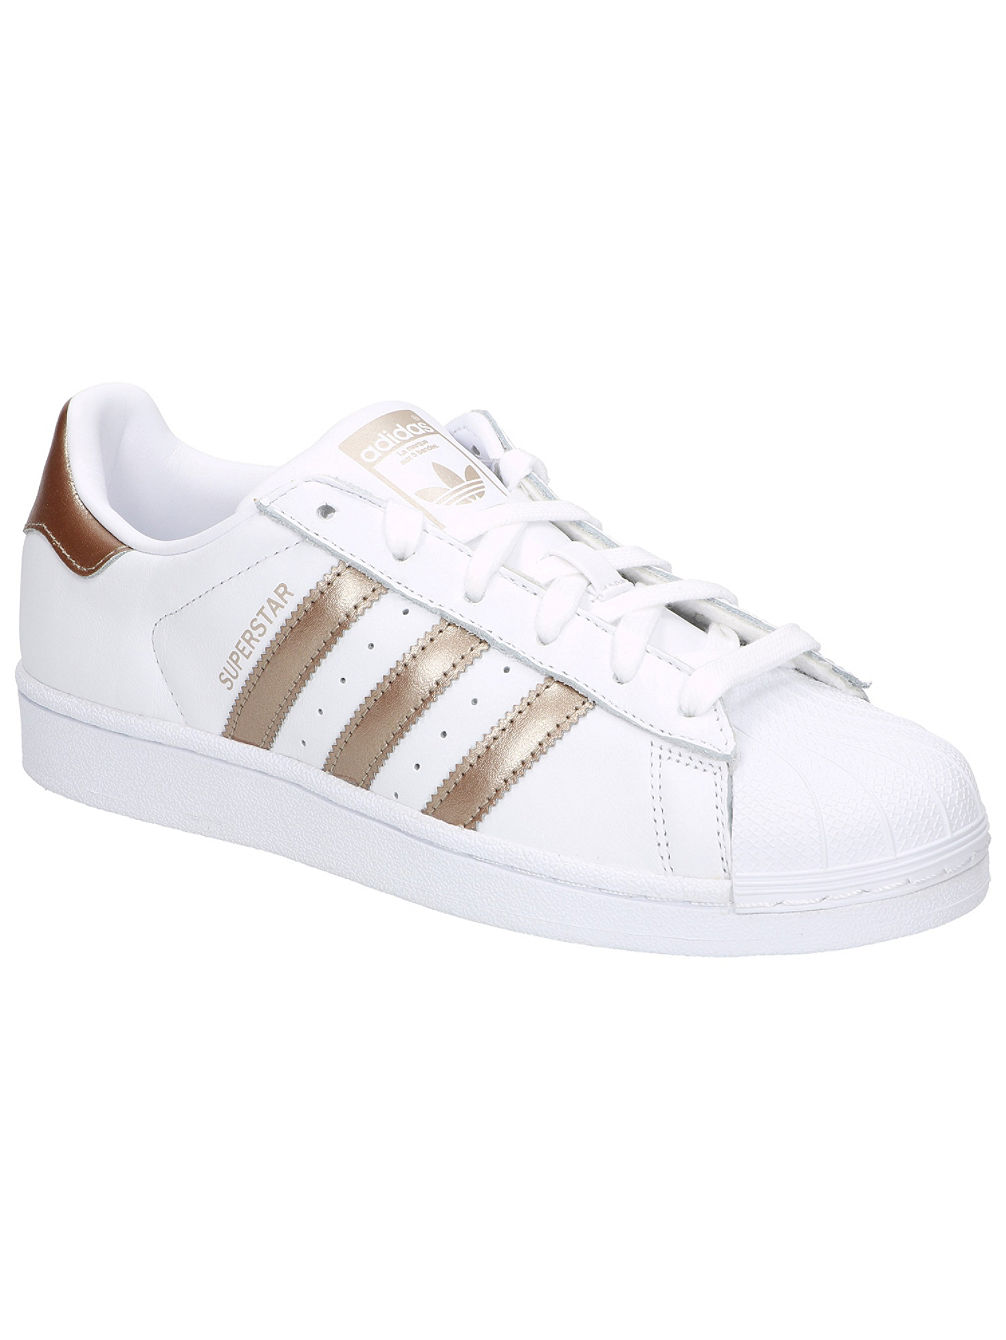 2a454874735 Buy adidas Originals Superstar Sneakers online at blue-tomato.com